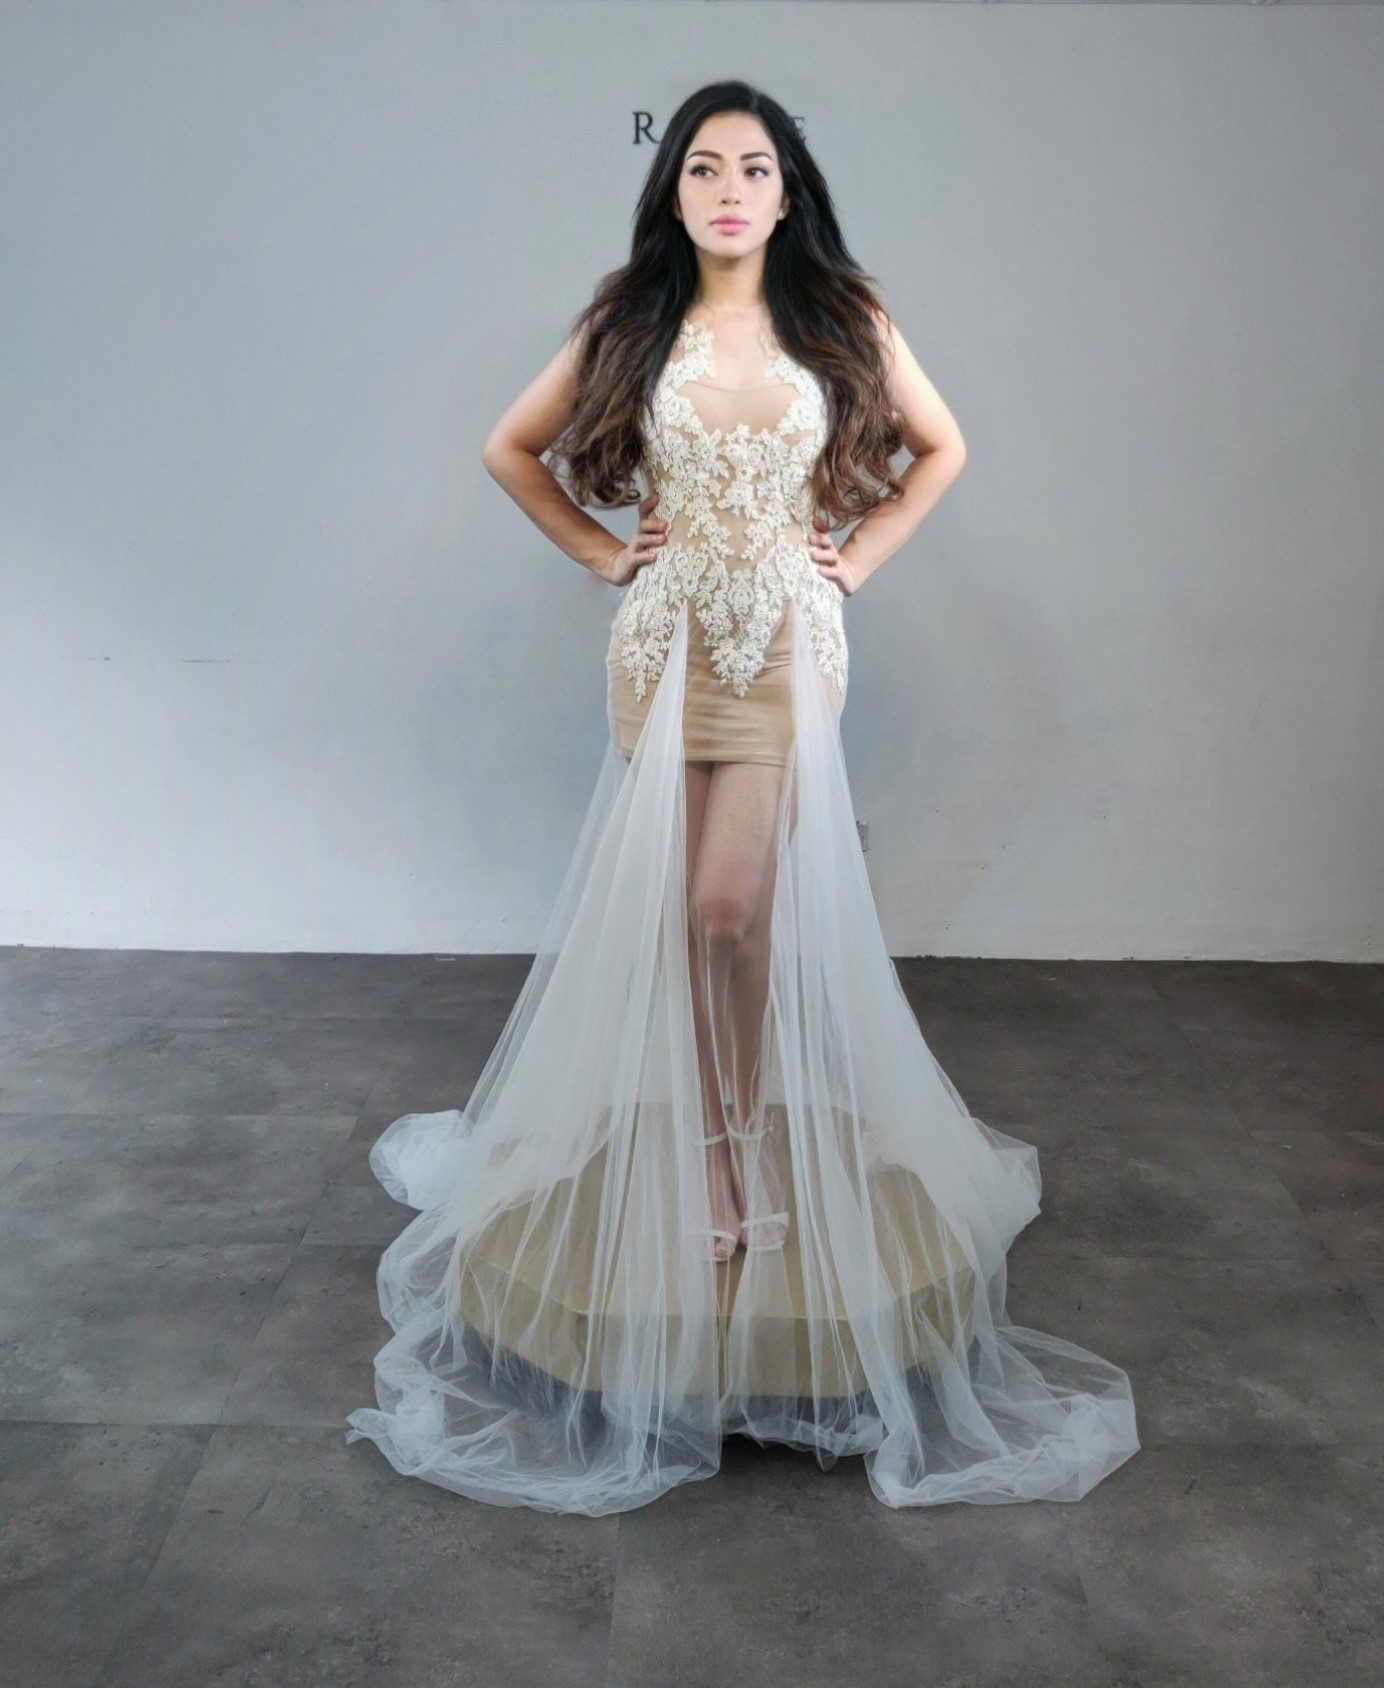 Serpentine Bridal Gown - another look